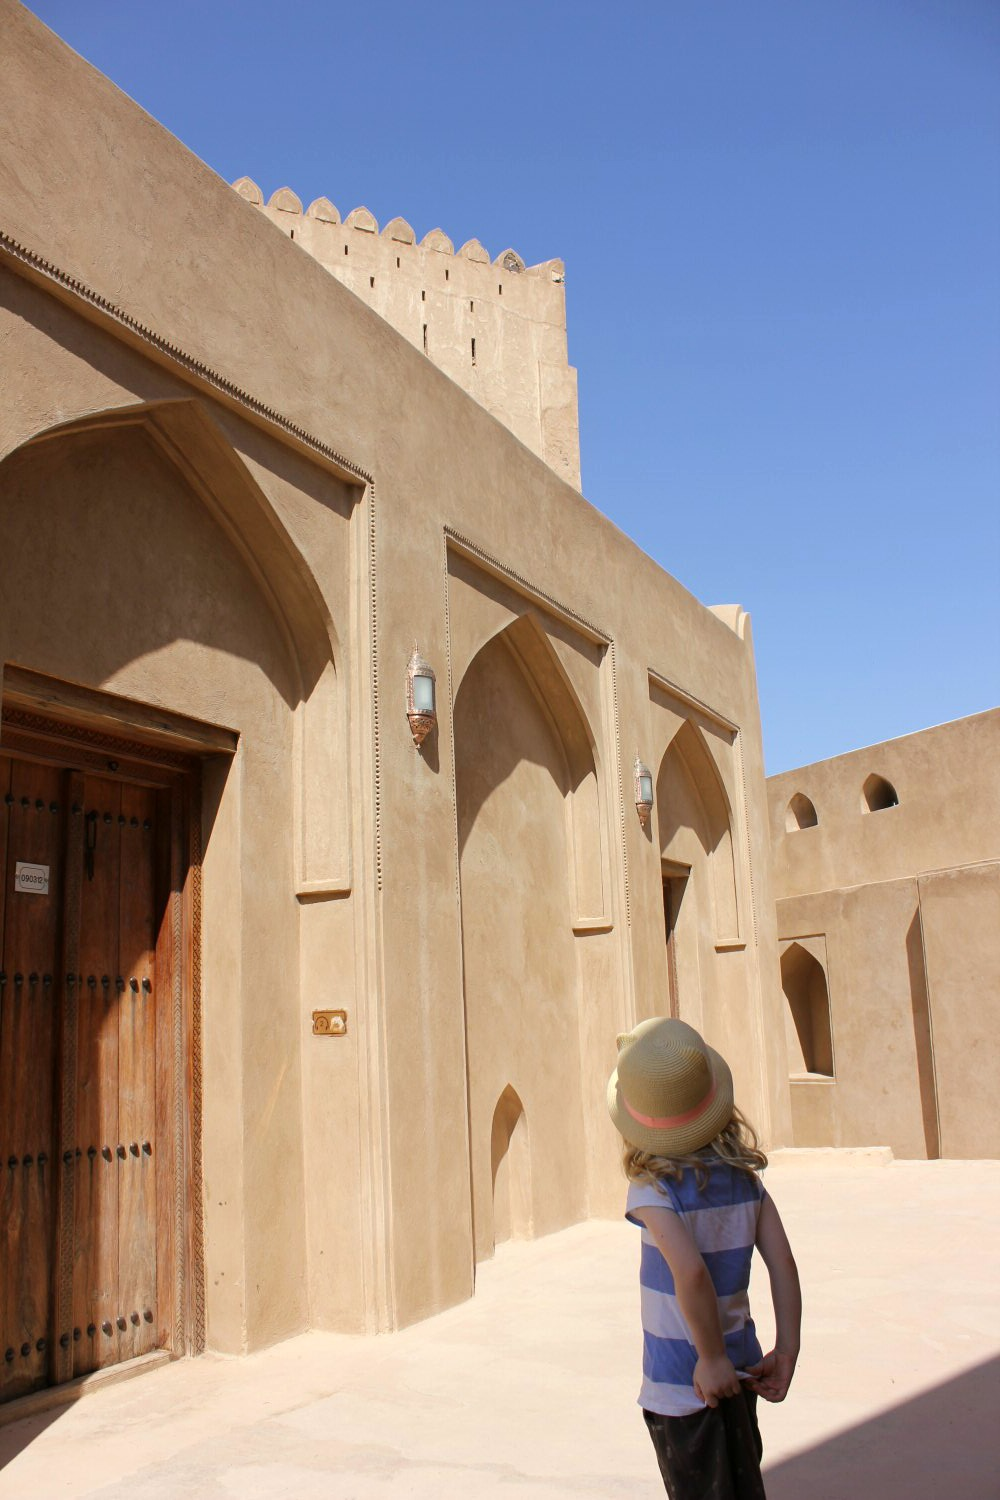 My daughter looks up an arched doorways of the sand coloured buildings in Jarbin Castle in Oman against a blue sky- my nine reasons to visit Oman with kids